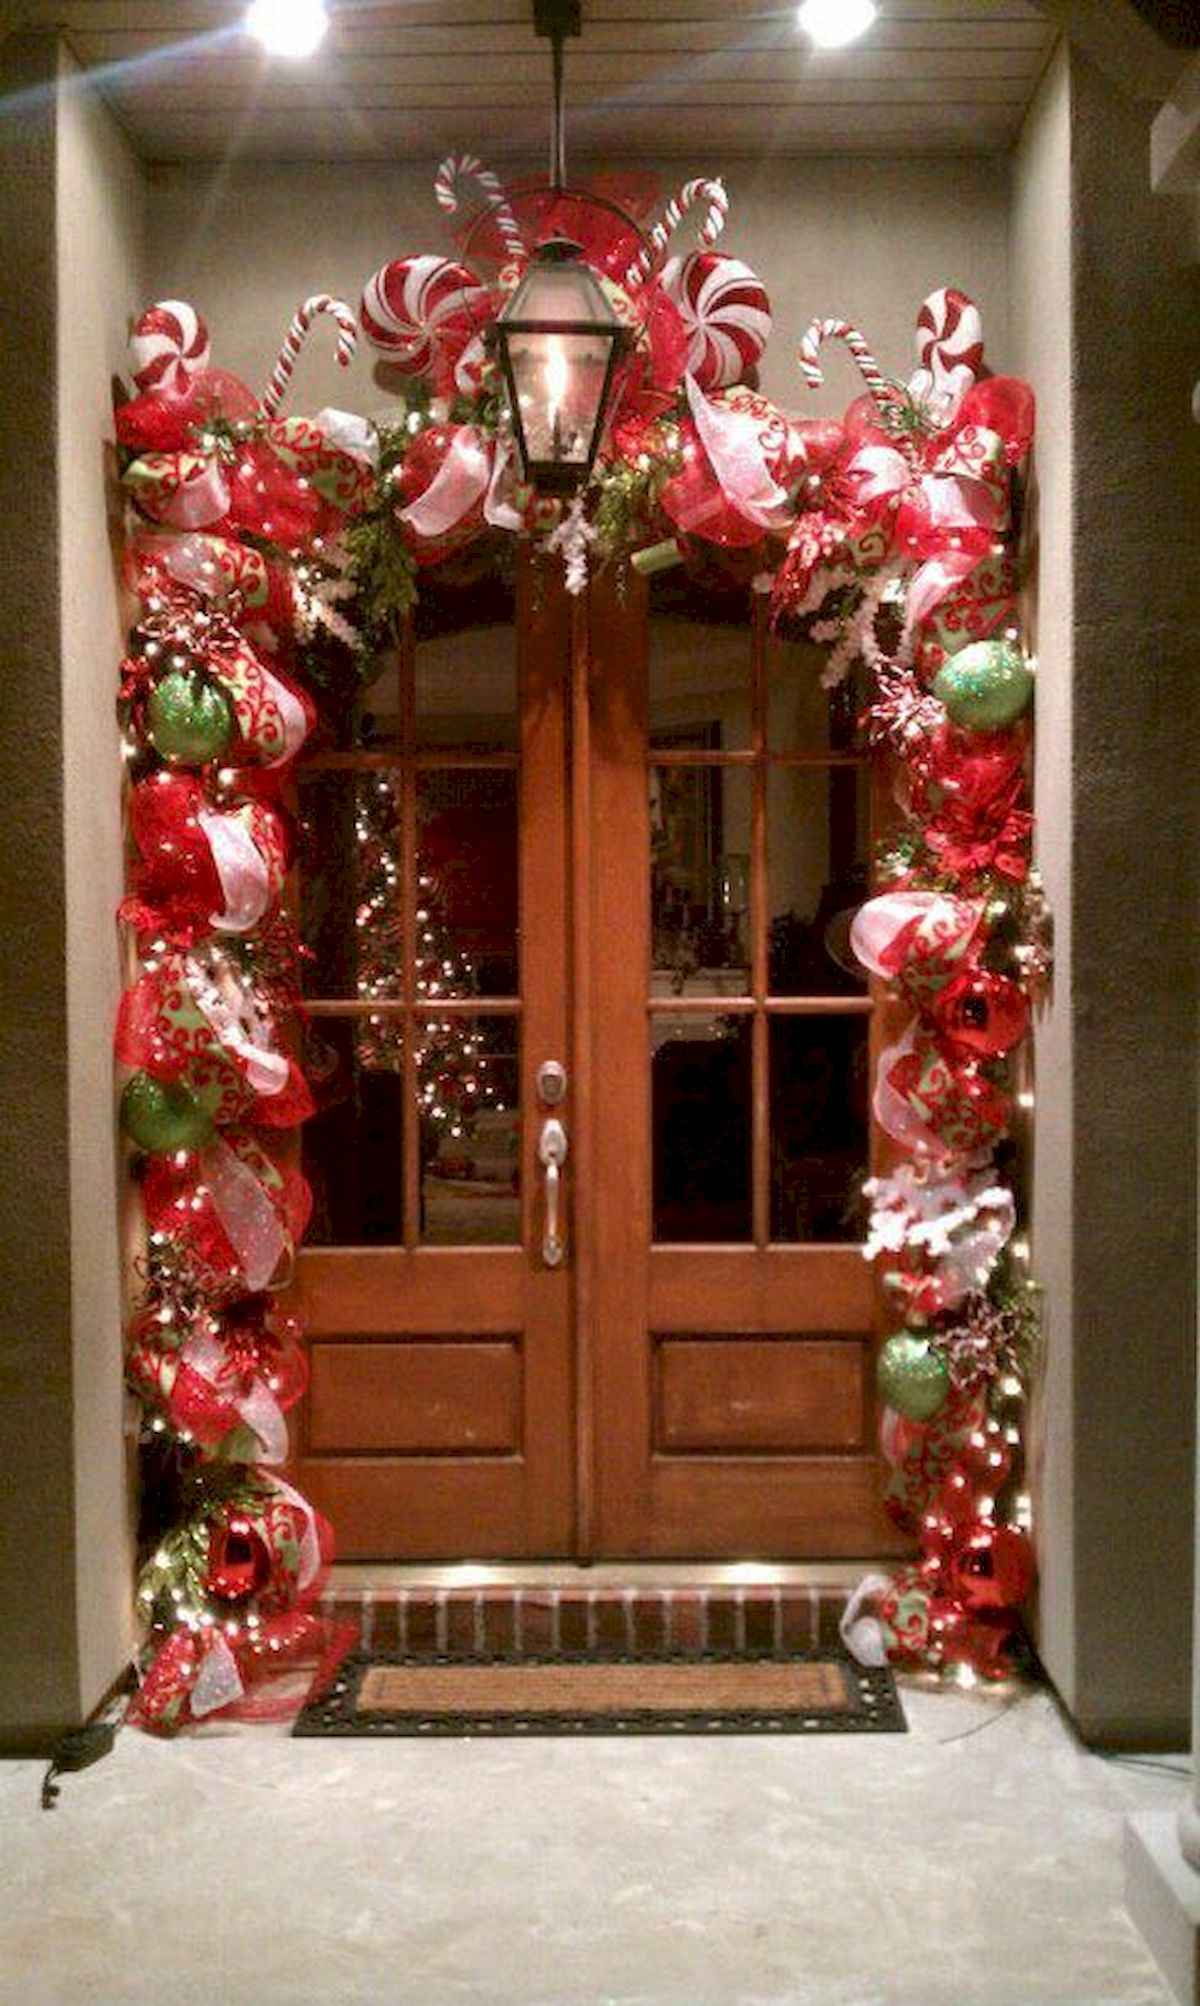 50 stunning front porch christmas lights decorations ideas (1)